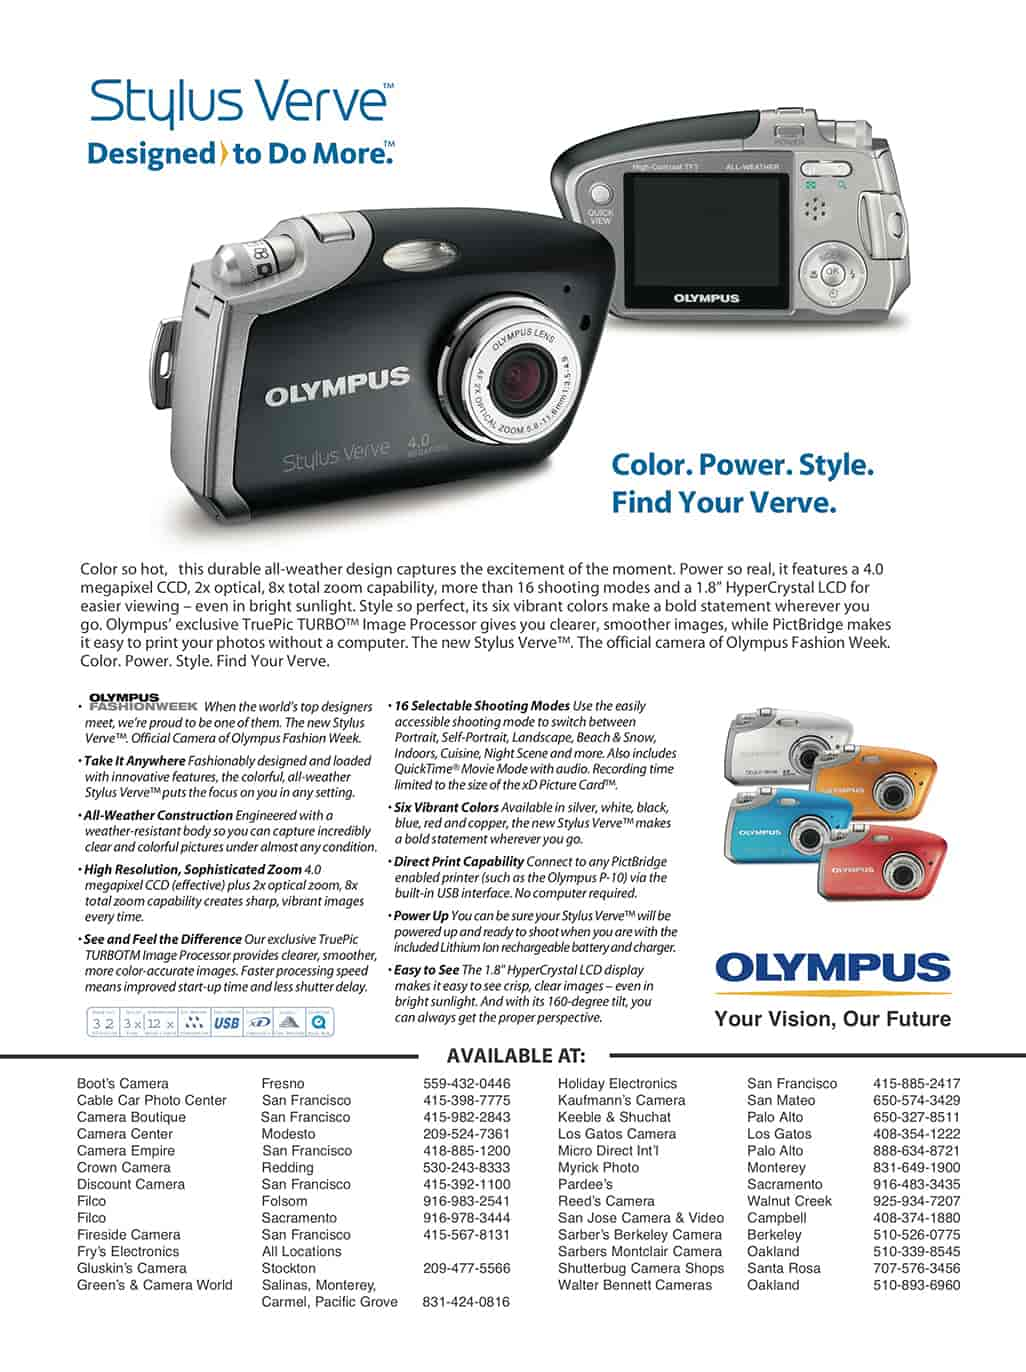 Olympus print advertising by ArmenoDesign.com